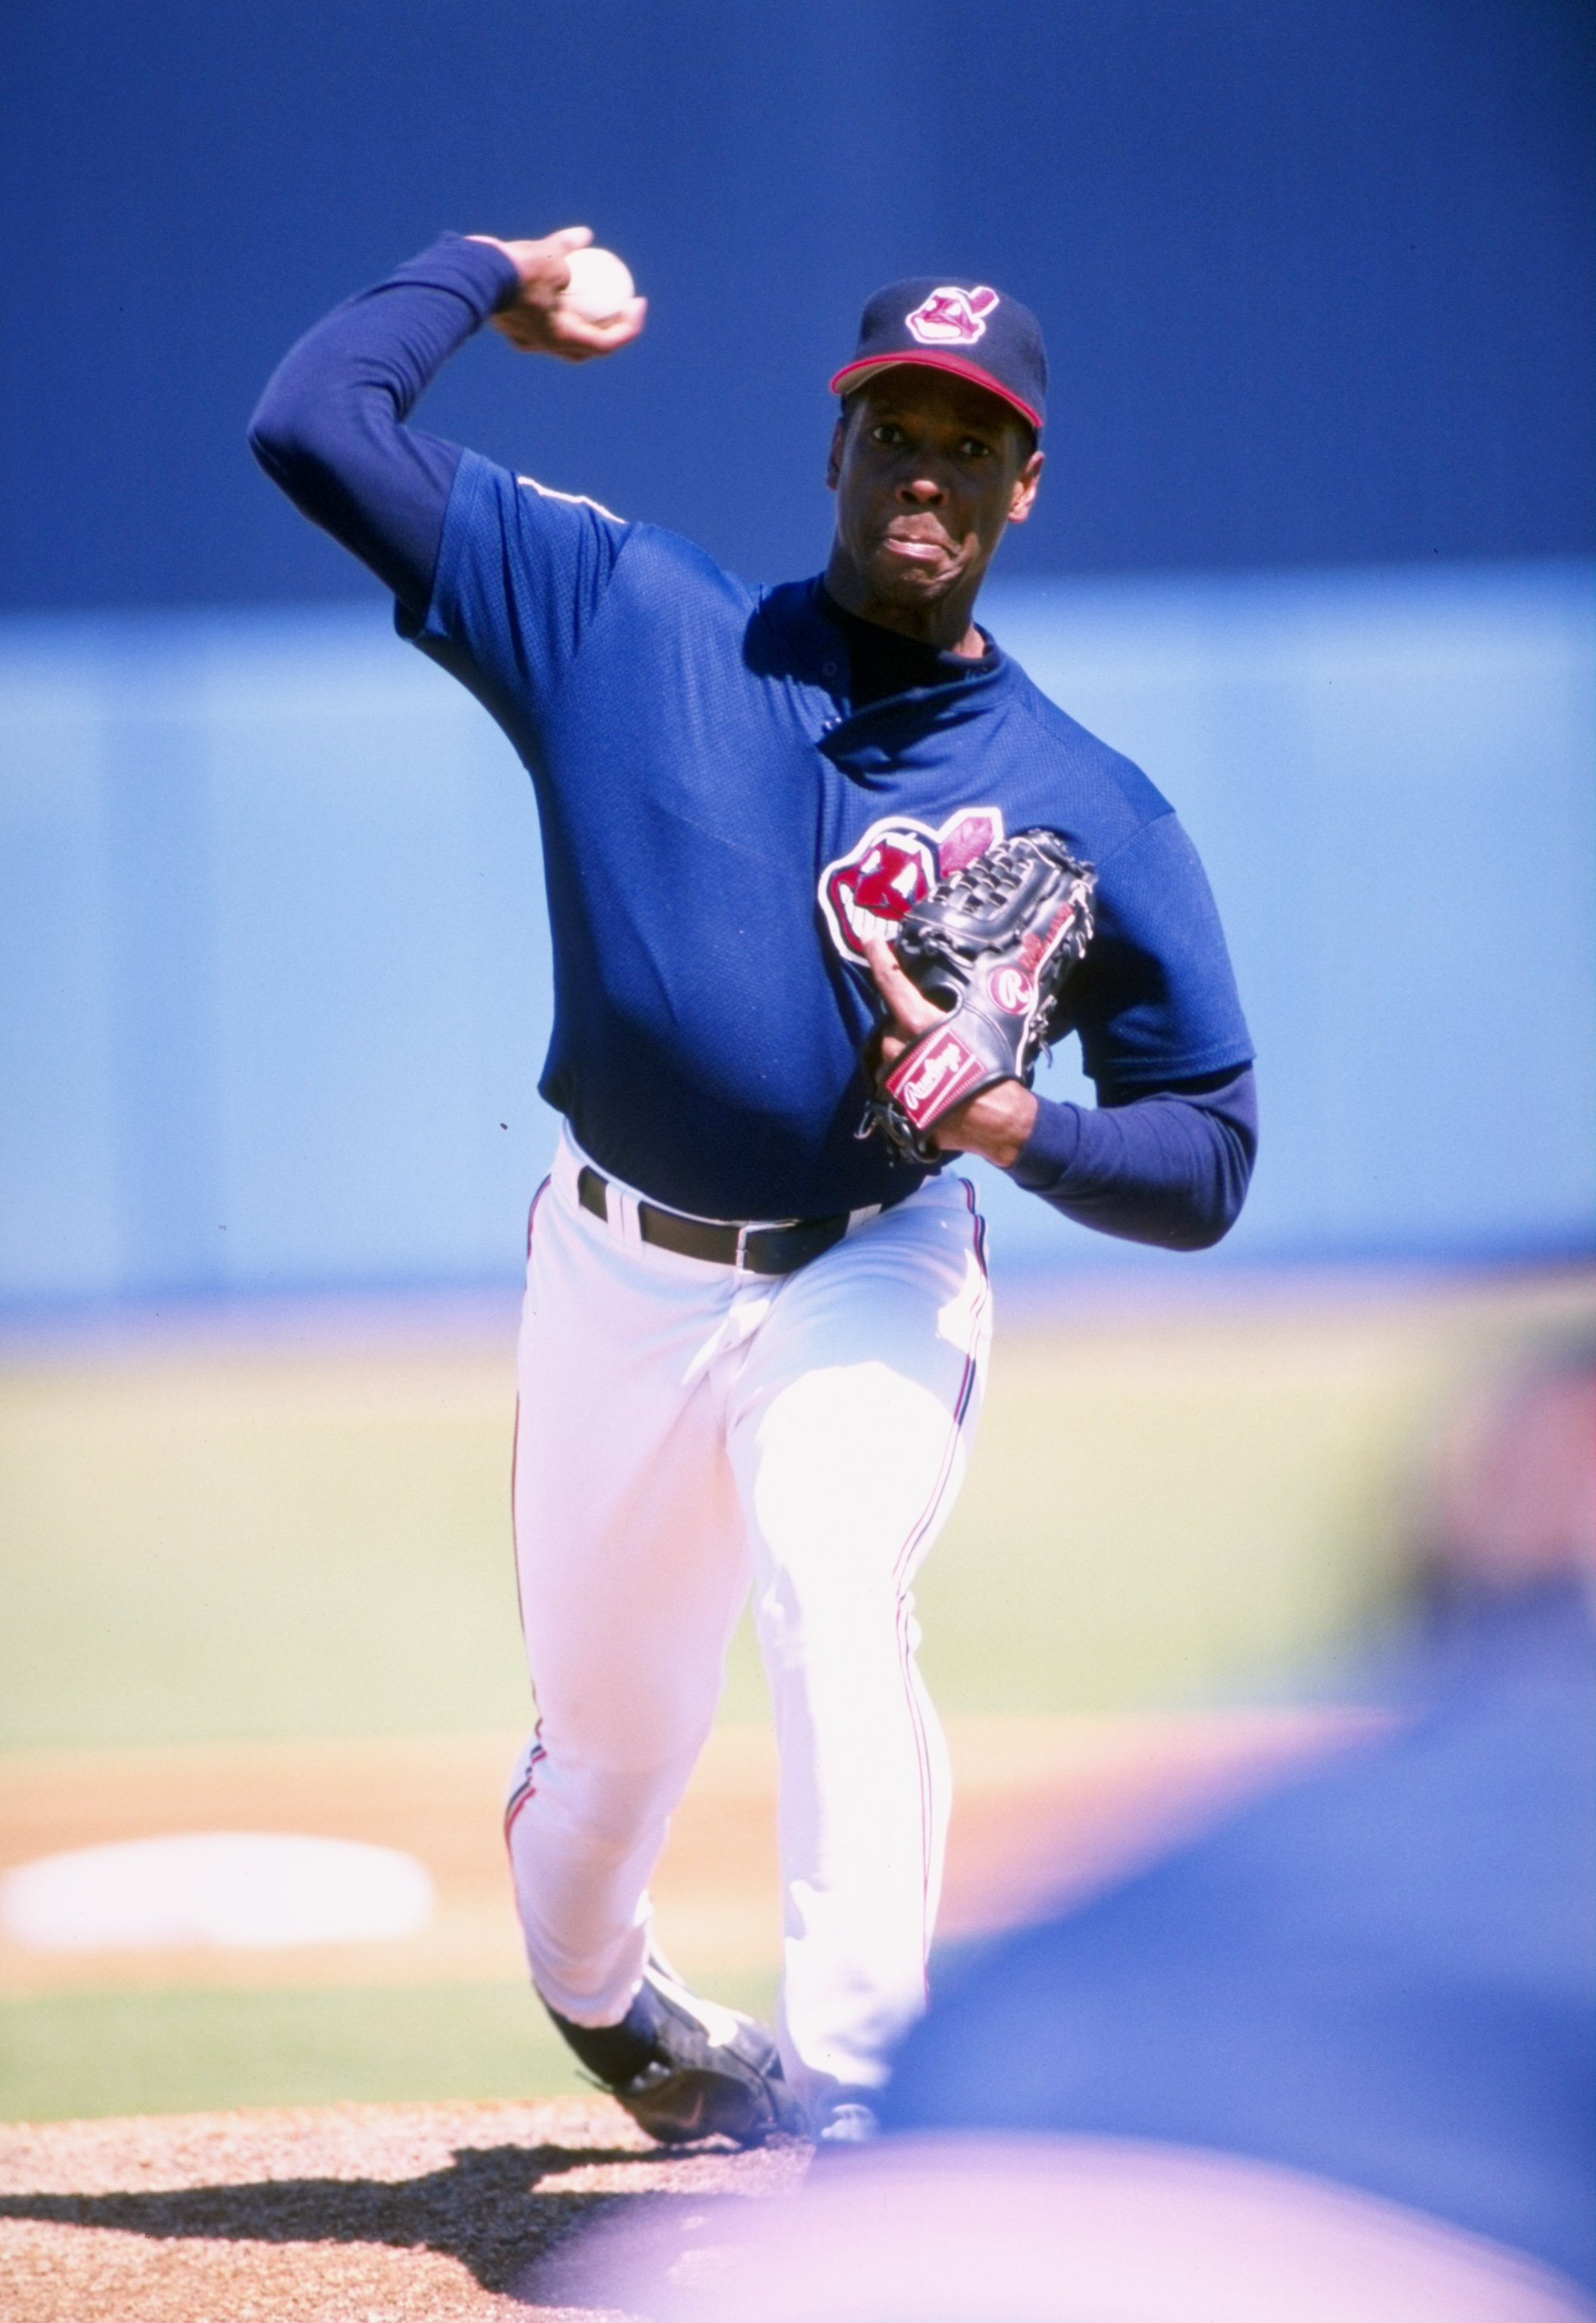 Dwight Gooden in 1998 as a Cleveland Indian